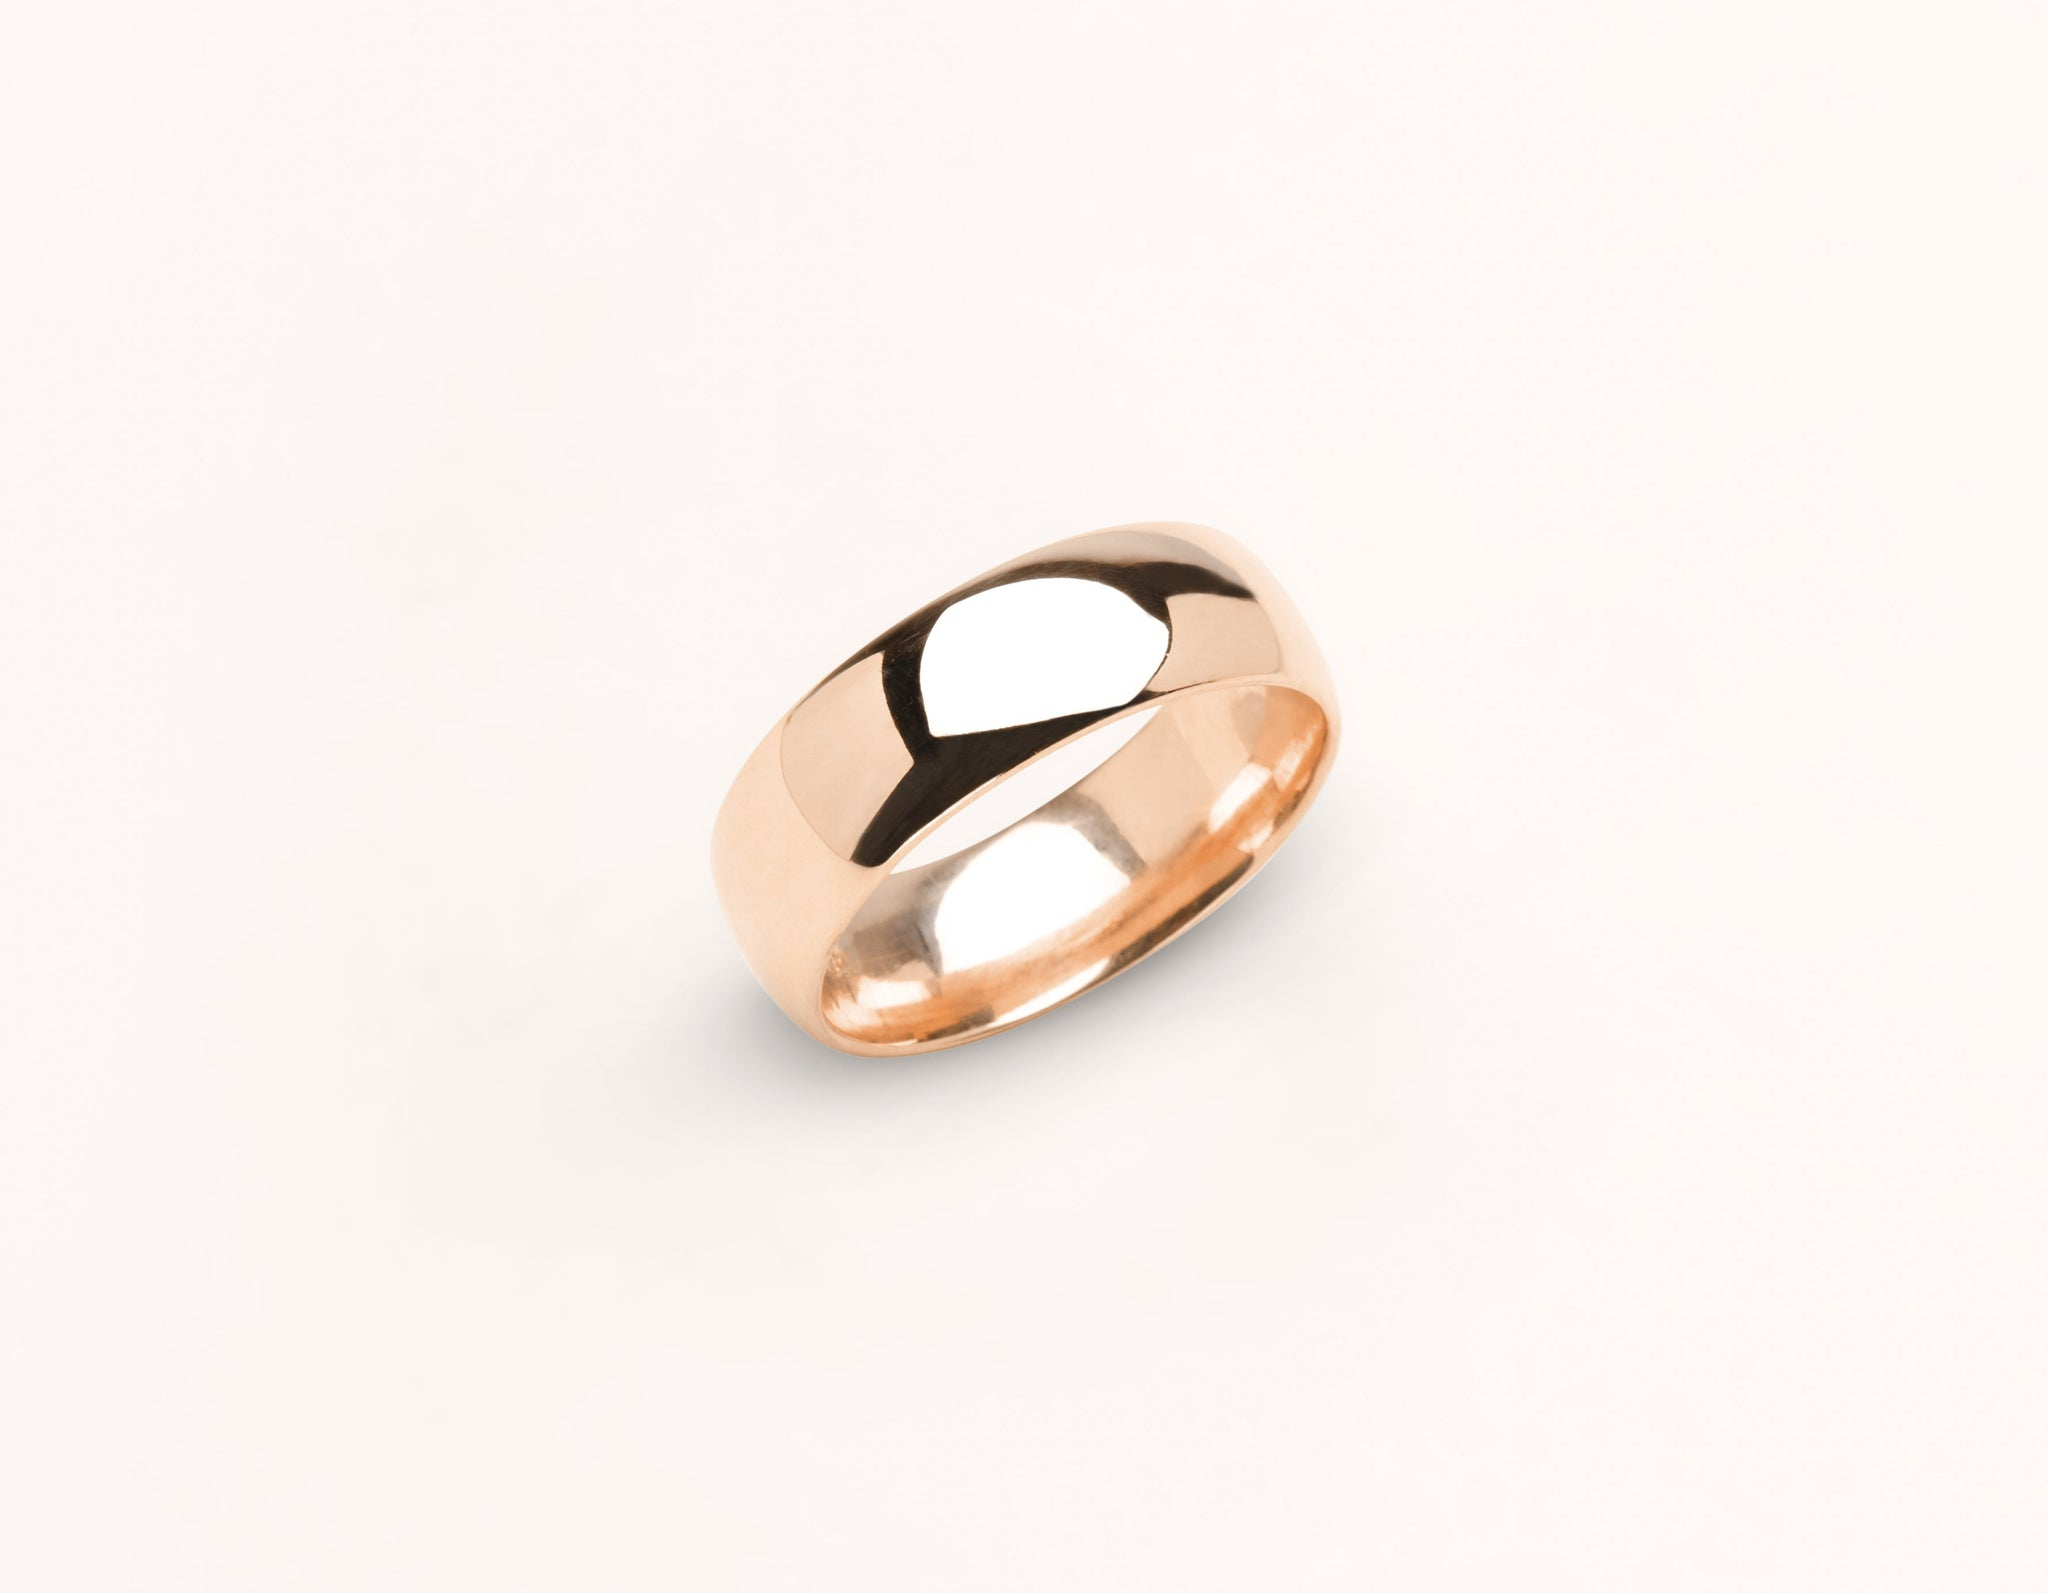 Minimalist 18k solid rose gold 6 mm Round Wedding Band for men and women Vrai and Oro